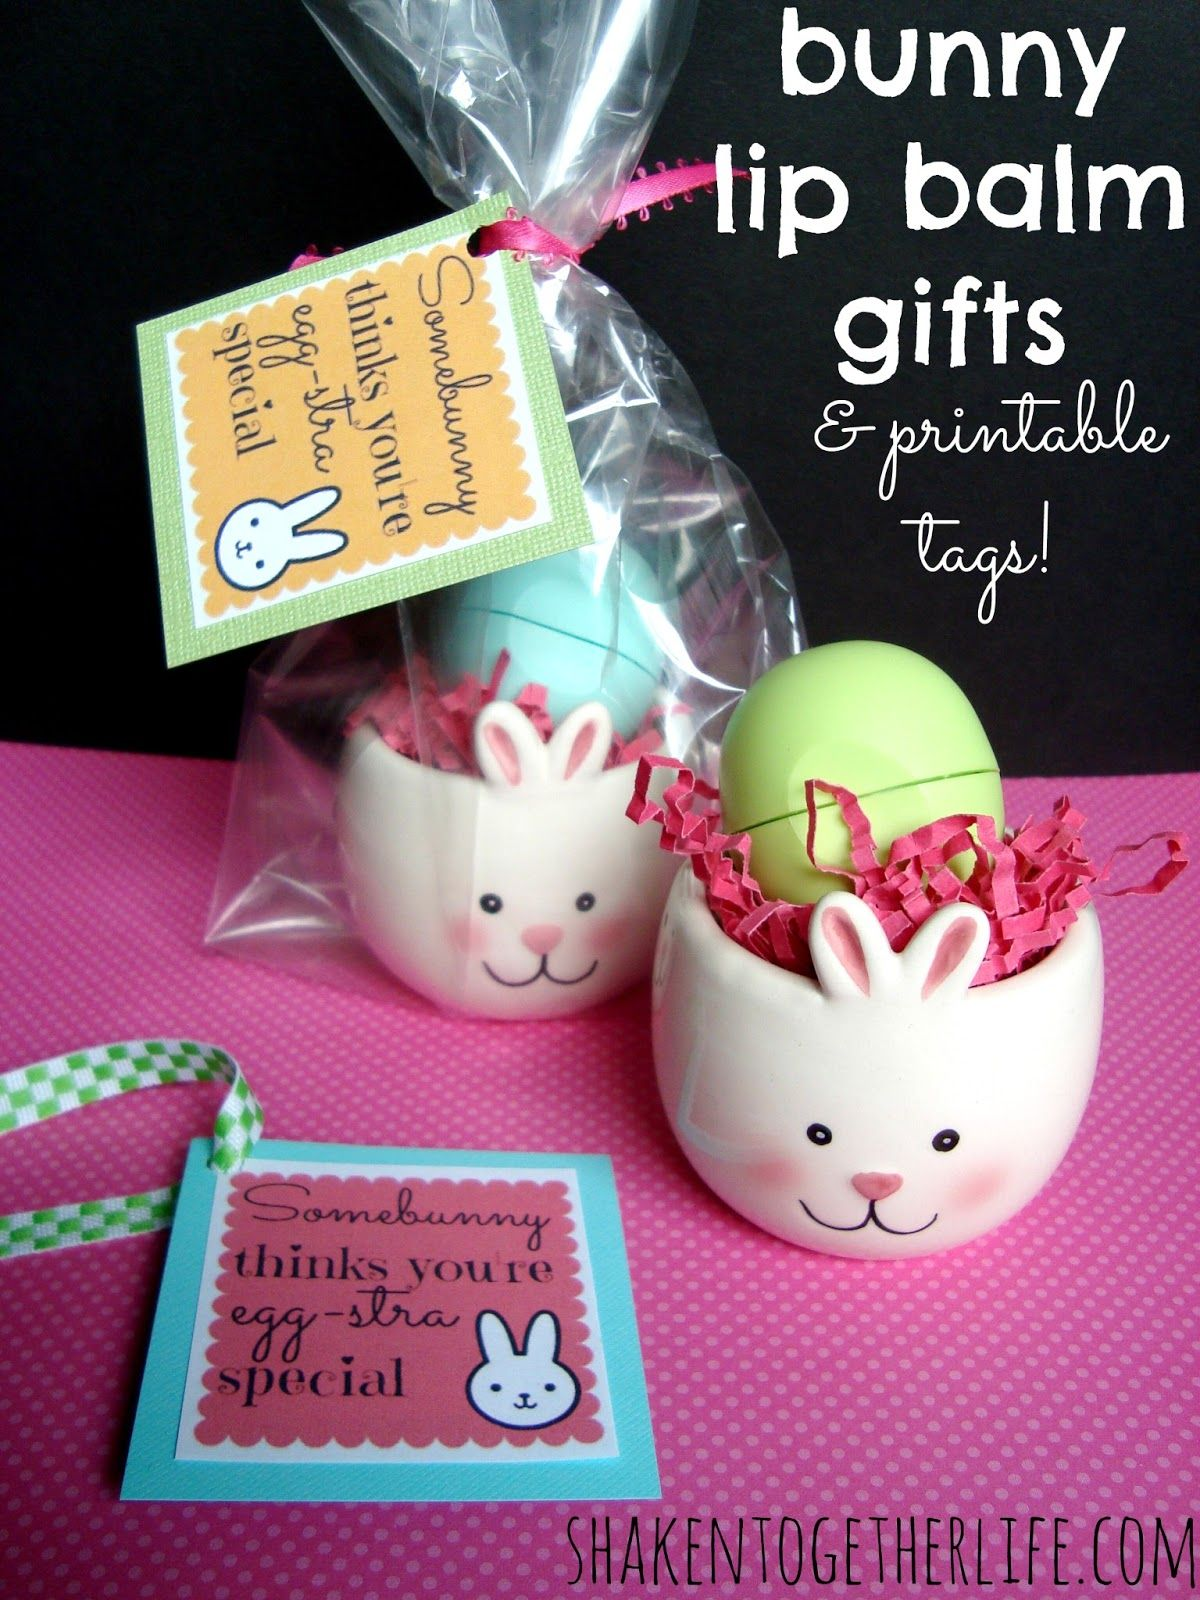 Cute printable easter tags plus i love eos lip balm would make shaken together create this bunny lip balm gifts for easter free printable tagslove this idea negle Image collections